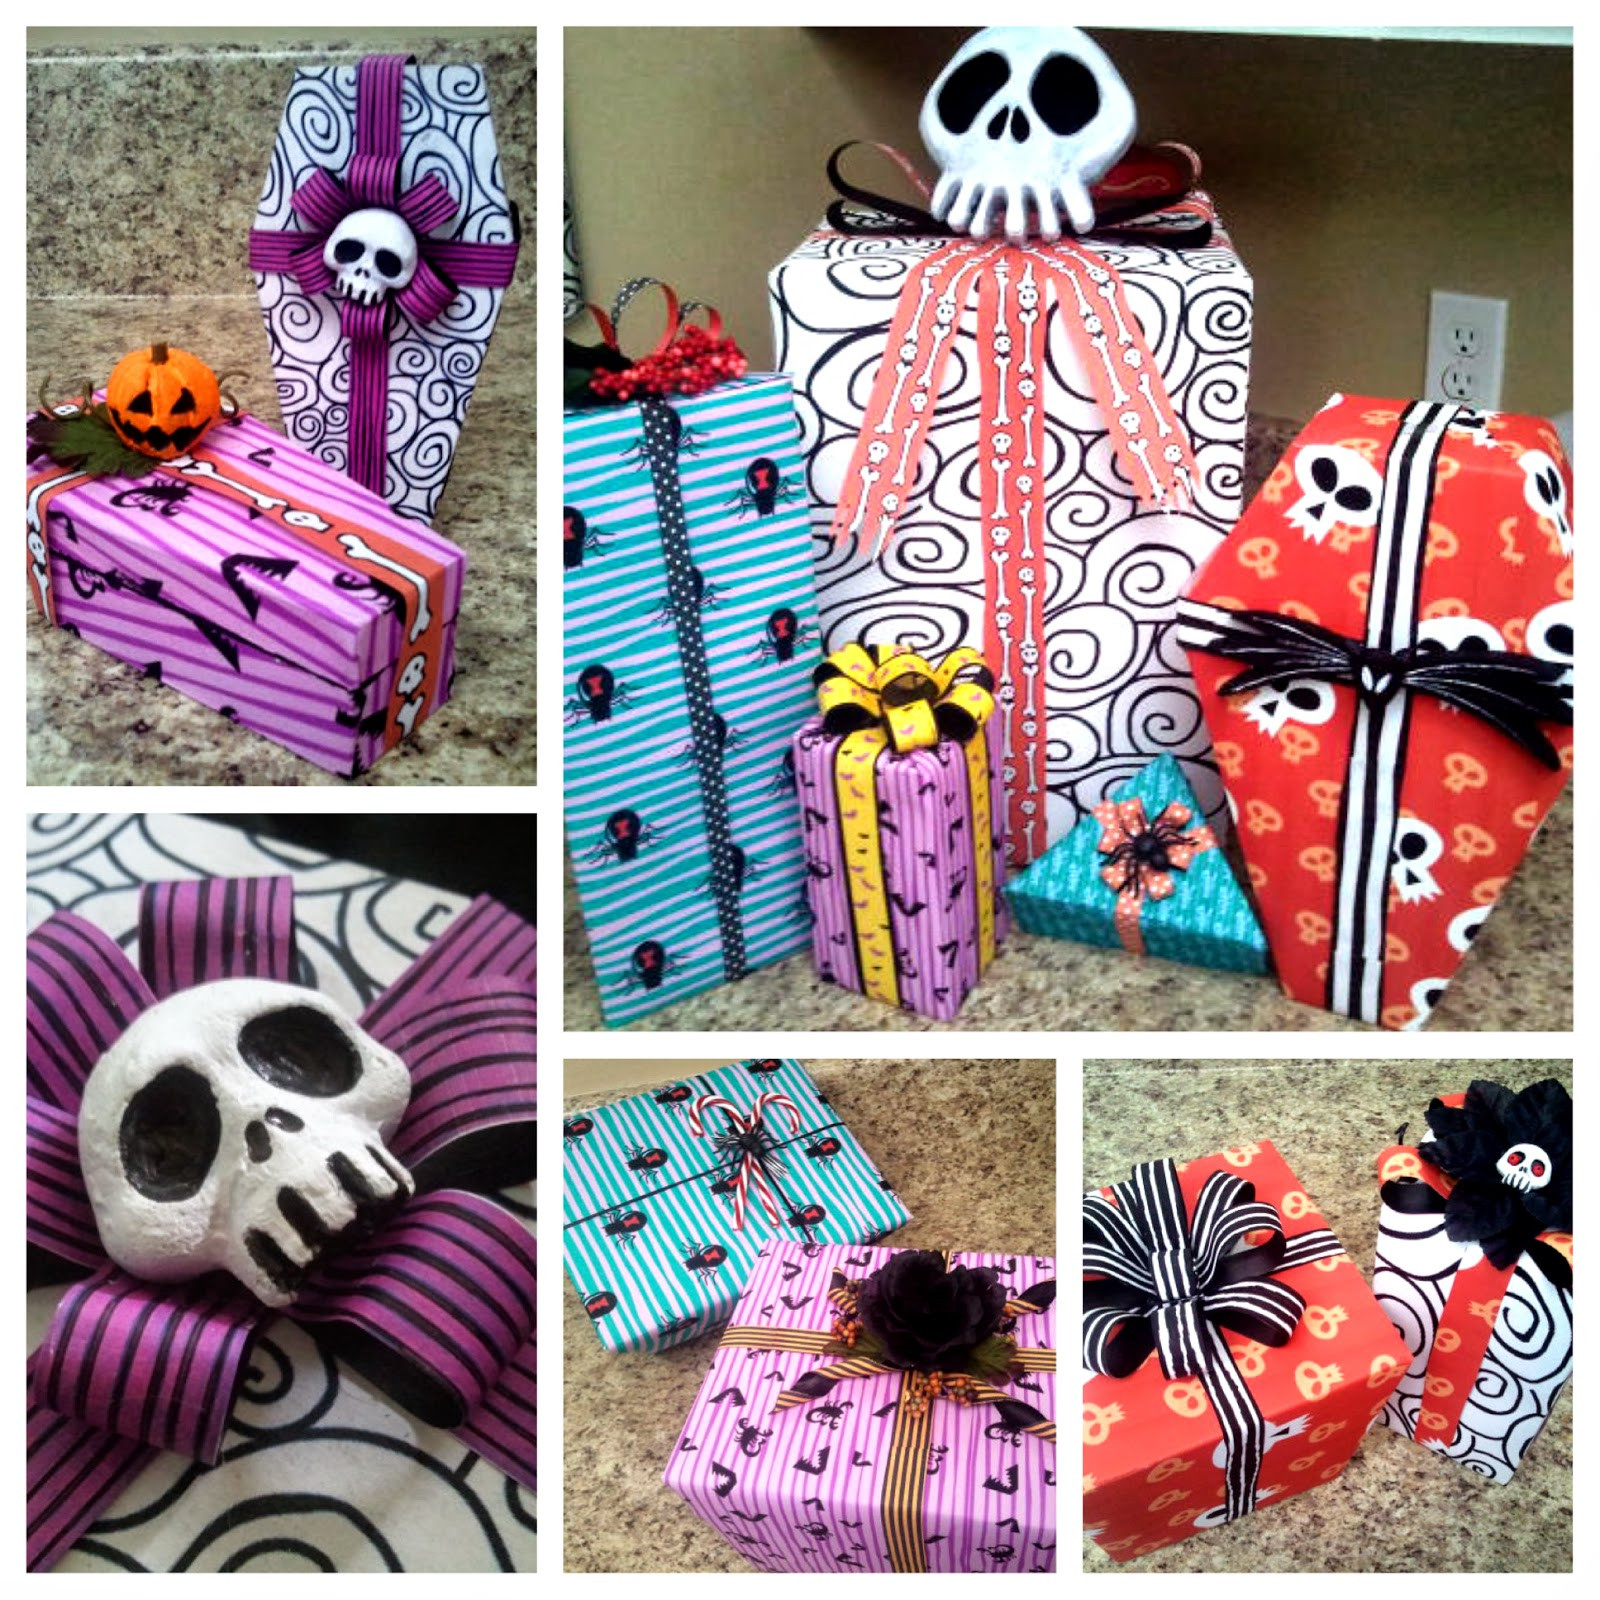 Best ideas about Nightmare Before Christmas Decorations DIY . Save or Pin DIY Nightmare Before Christmas Halloween Props Nightmare Now.